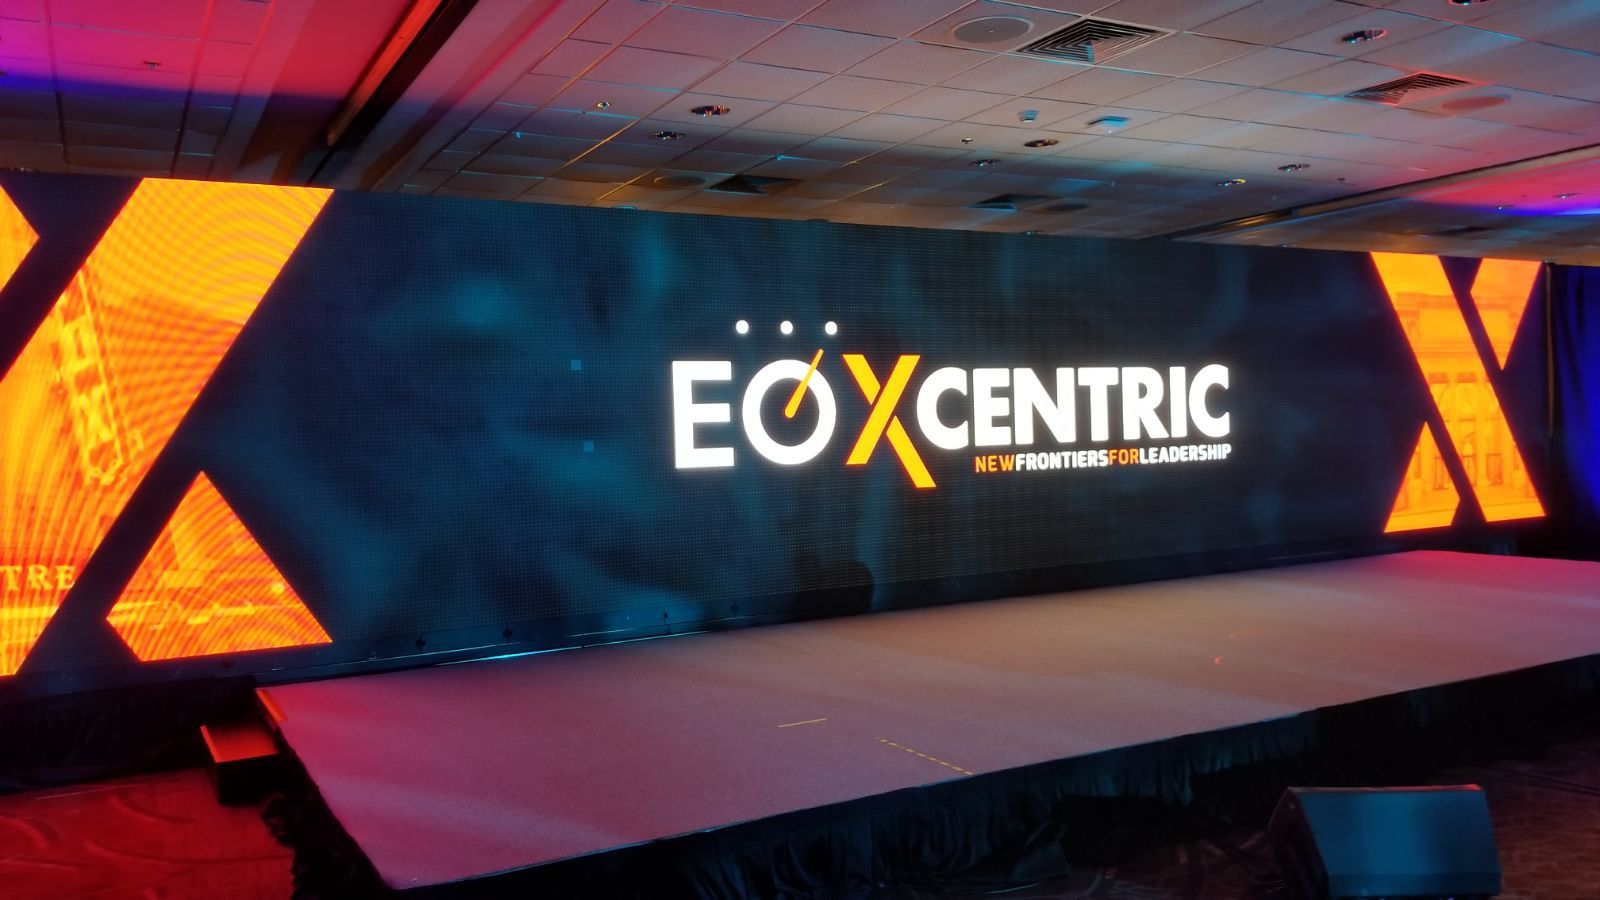 Large LED video wall as a stage backdrop for corporate conference